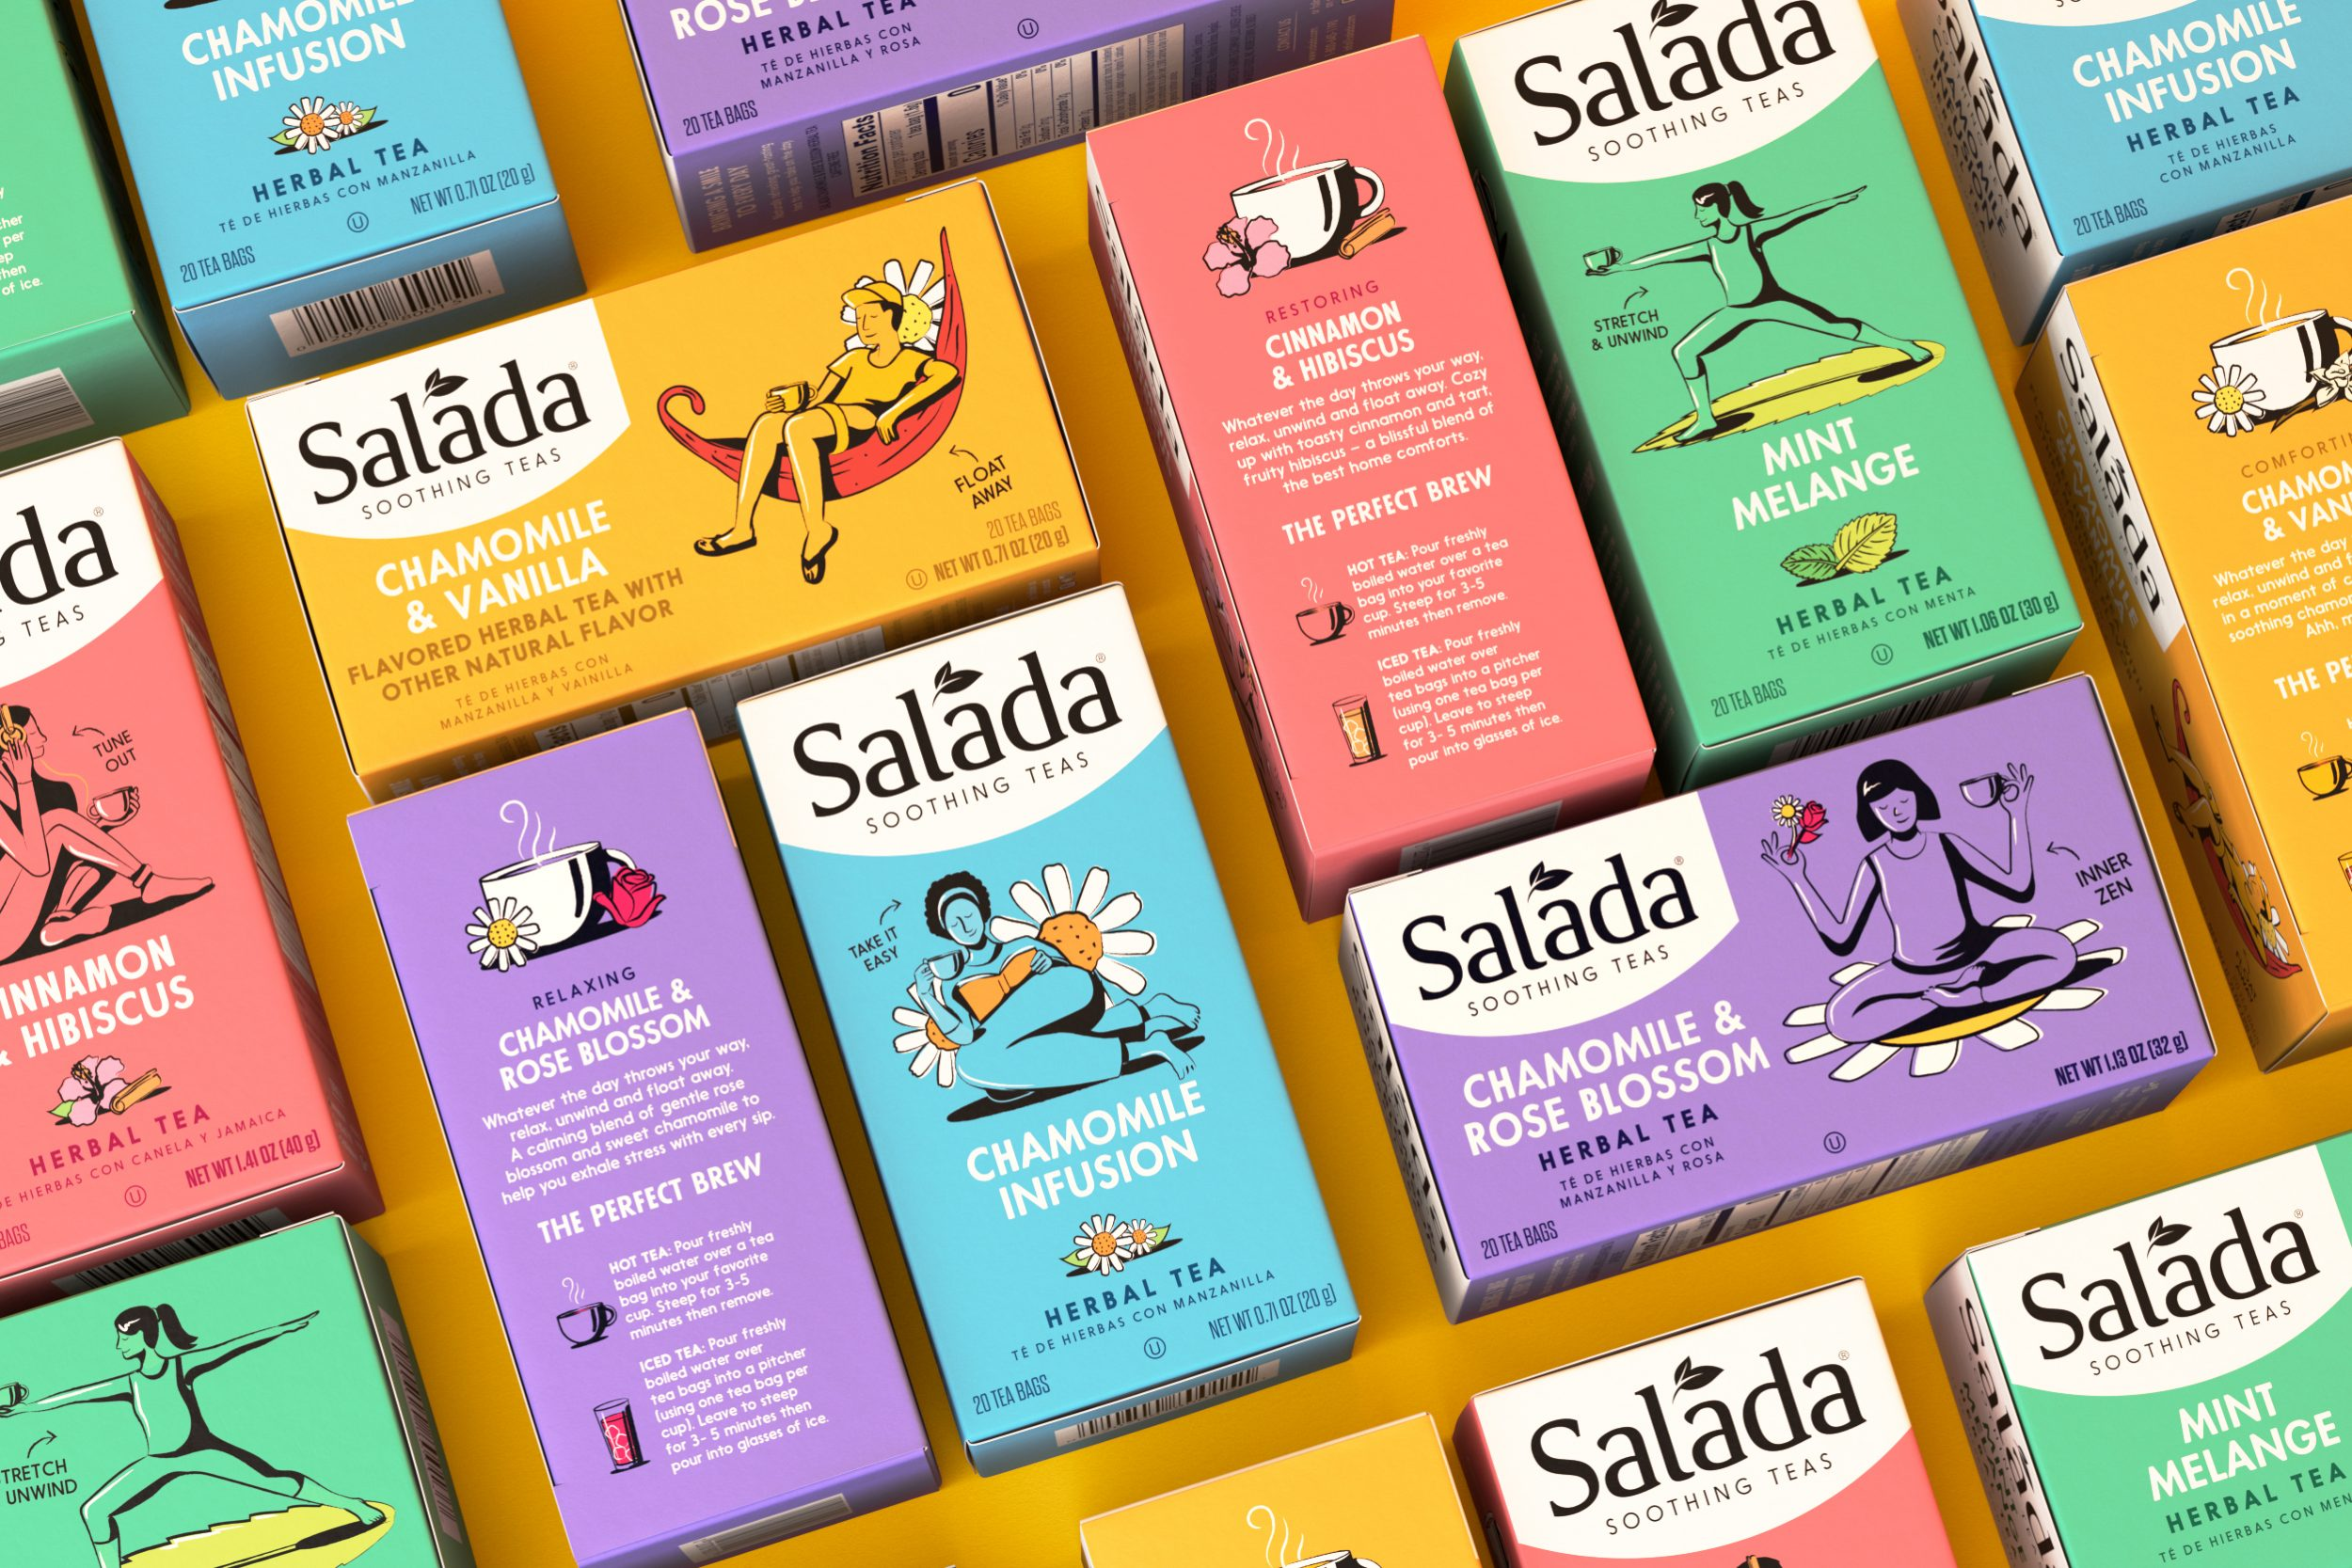 Salada Soothing Teas by Thirst Craft